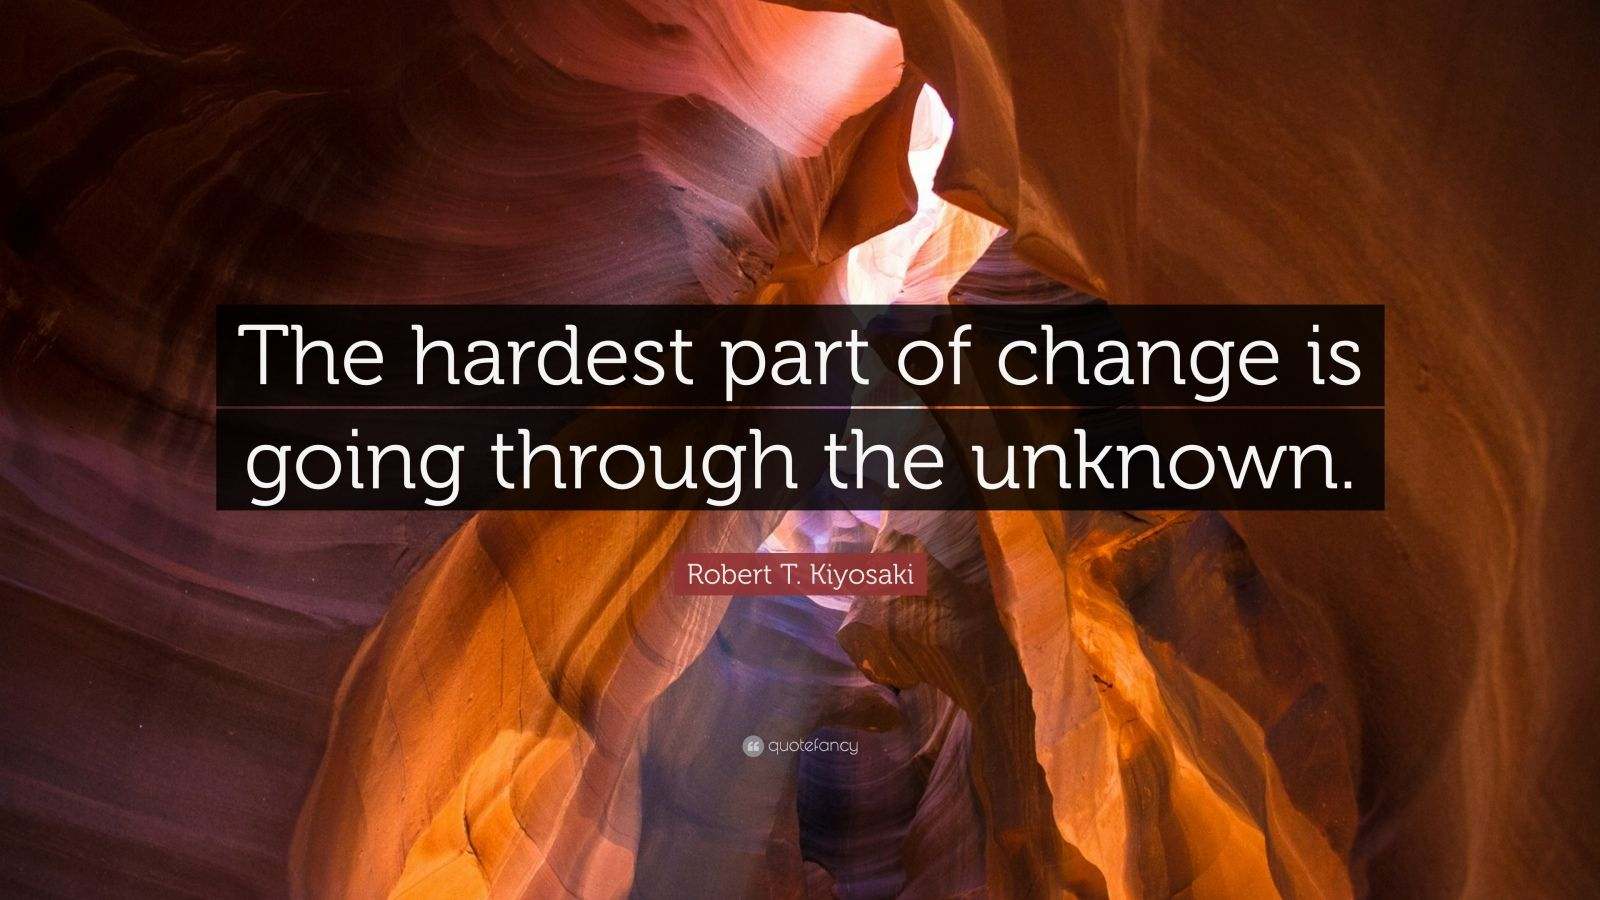 """Robert T. Kiyosaki Quote: """"The hardest part of change is going through the unknown."""""""